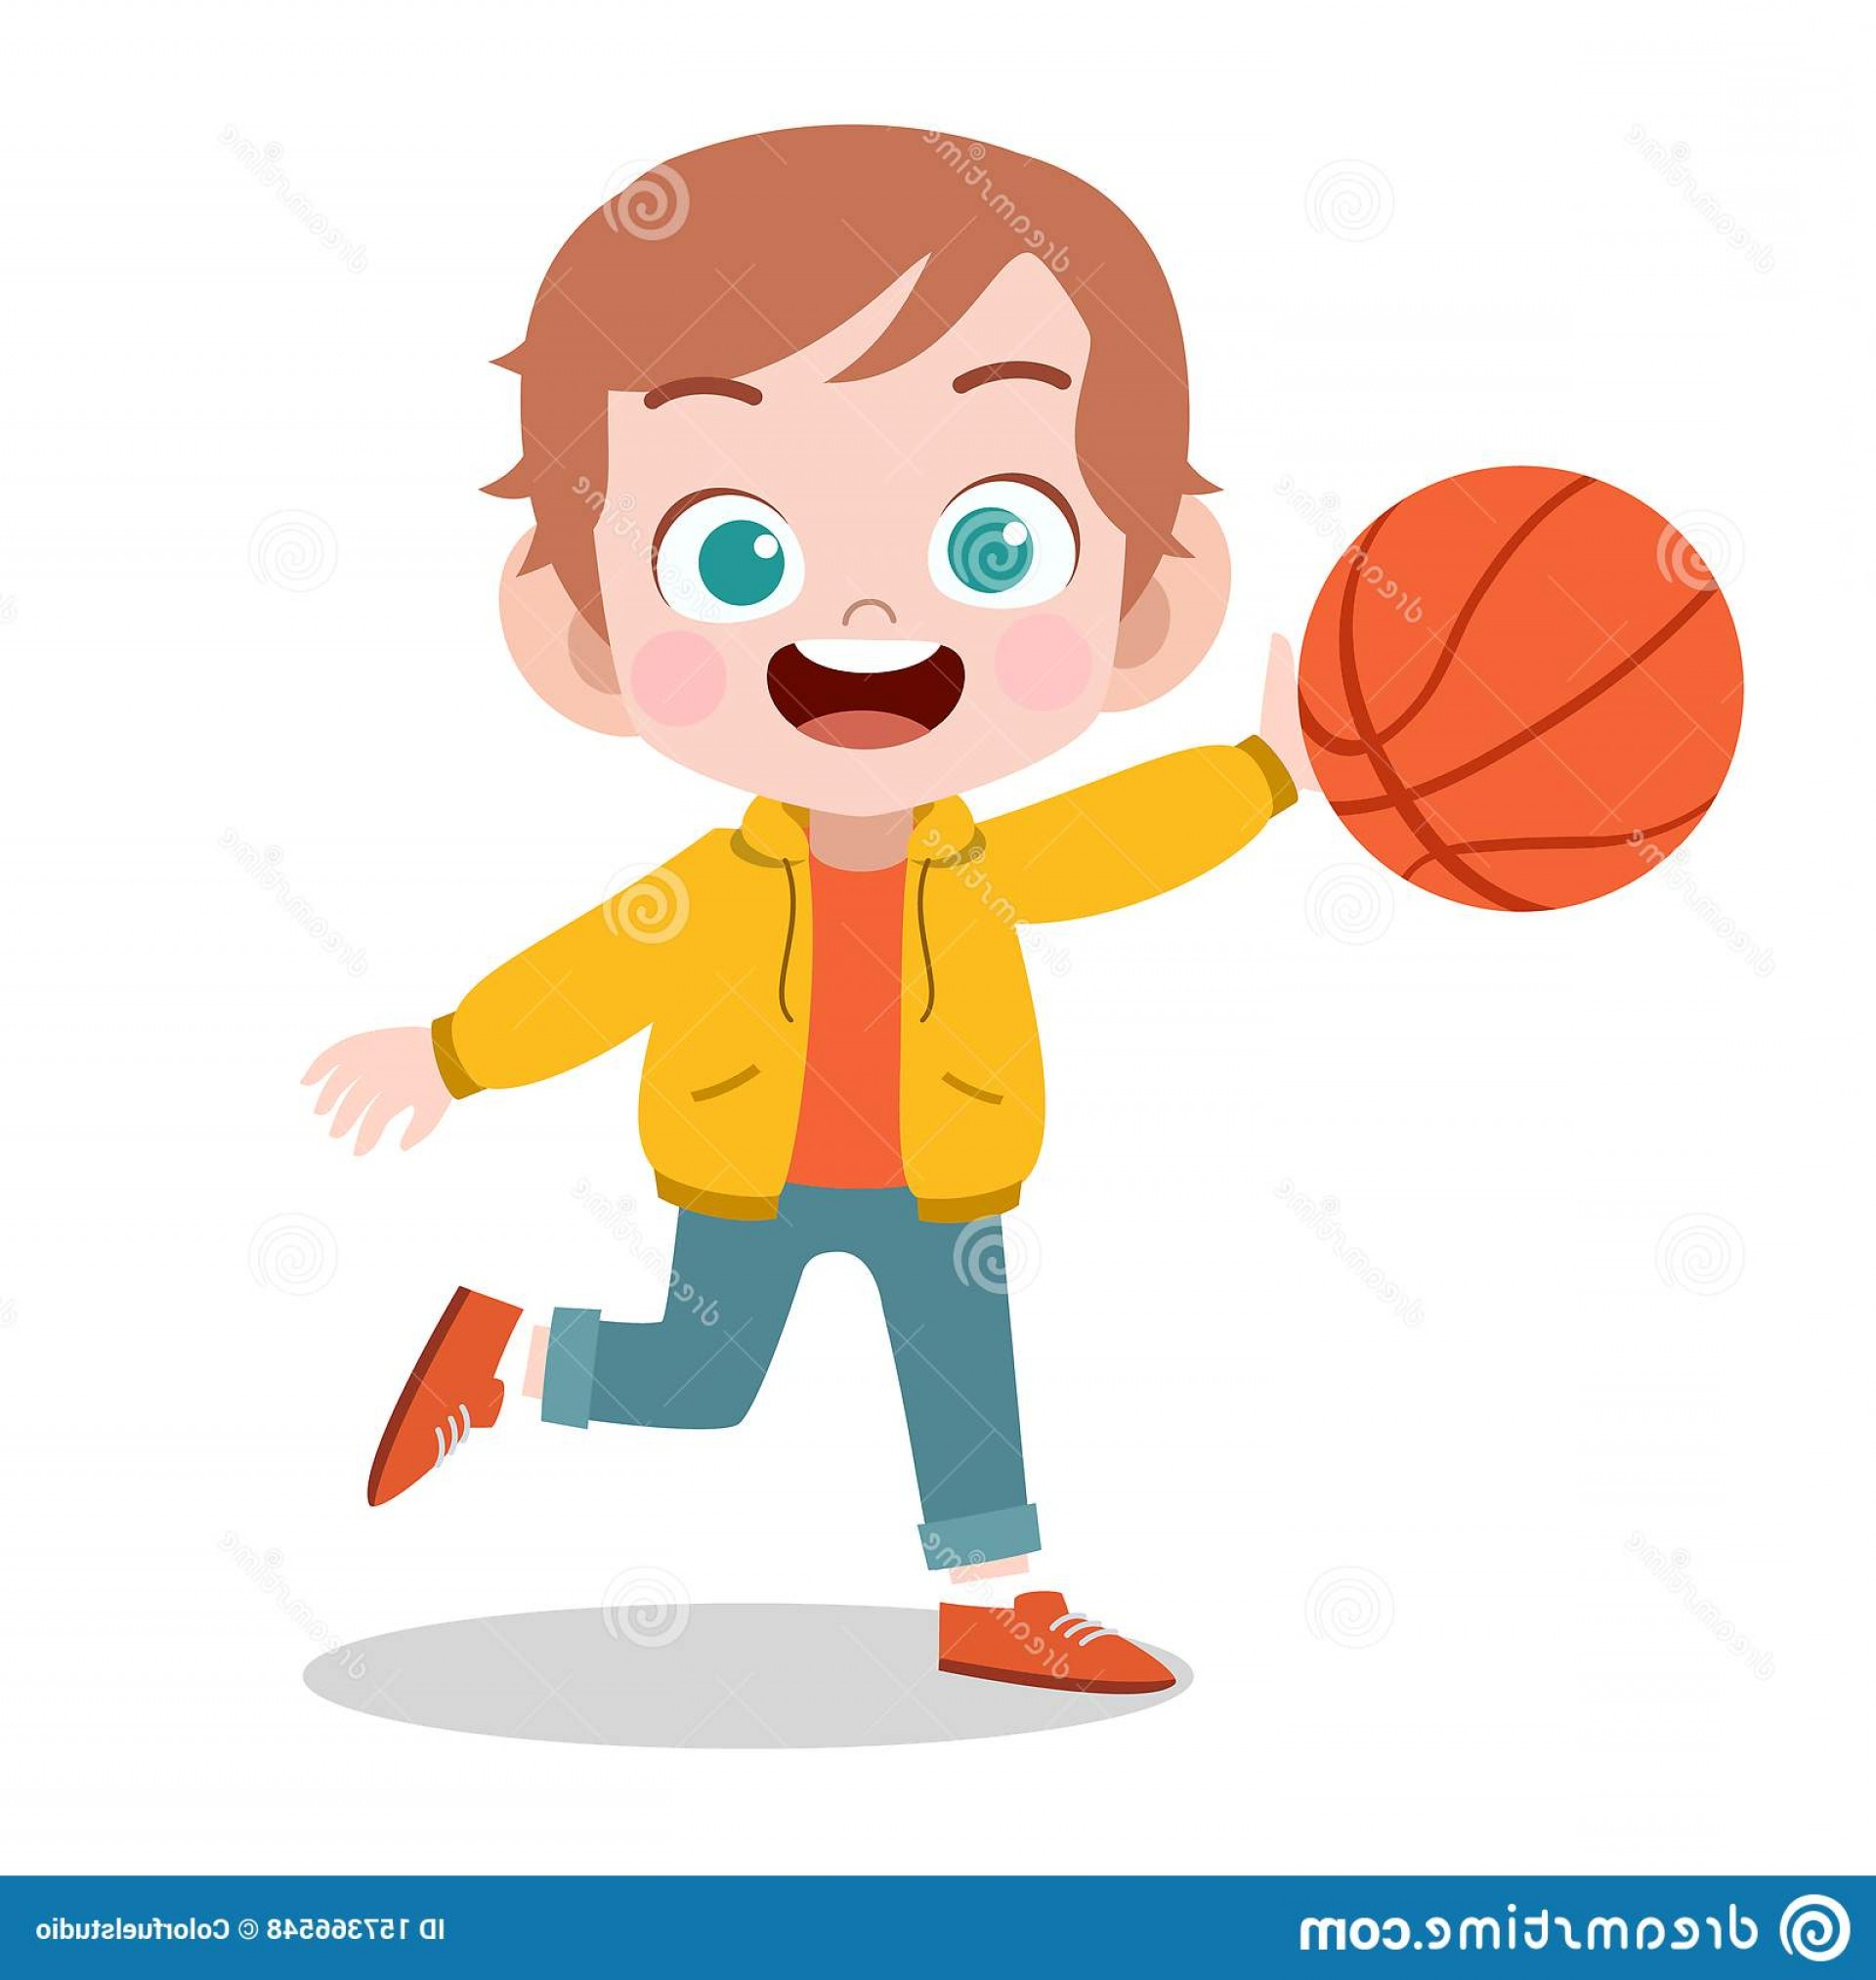 Cartoon Basketball Vector: Happy Kid Sport Basketball Vector Illustration Actions Active Activities Activity Adventure Athletics Backyard Boy Cartoon Image